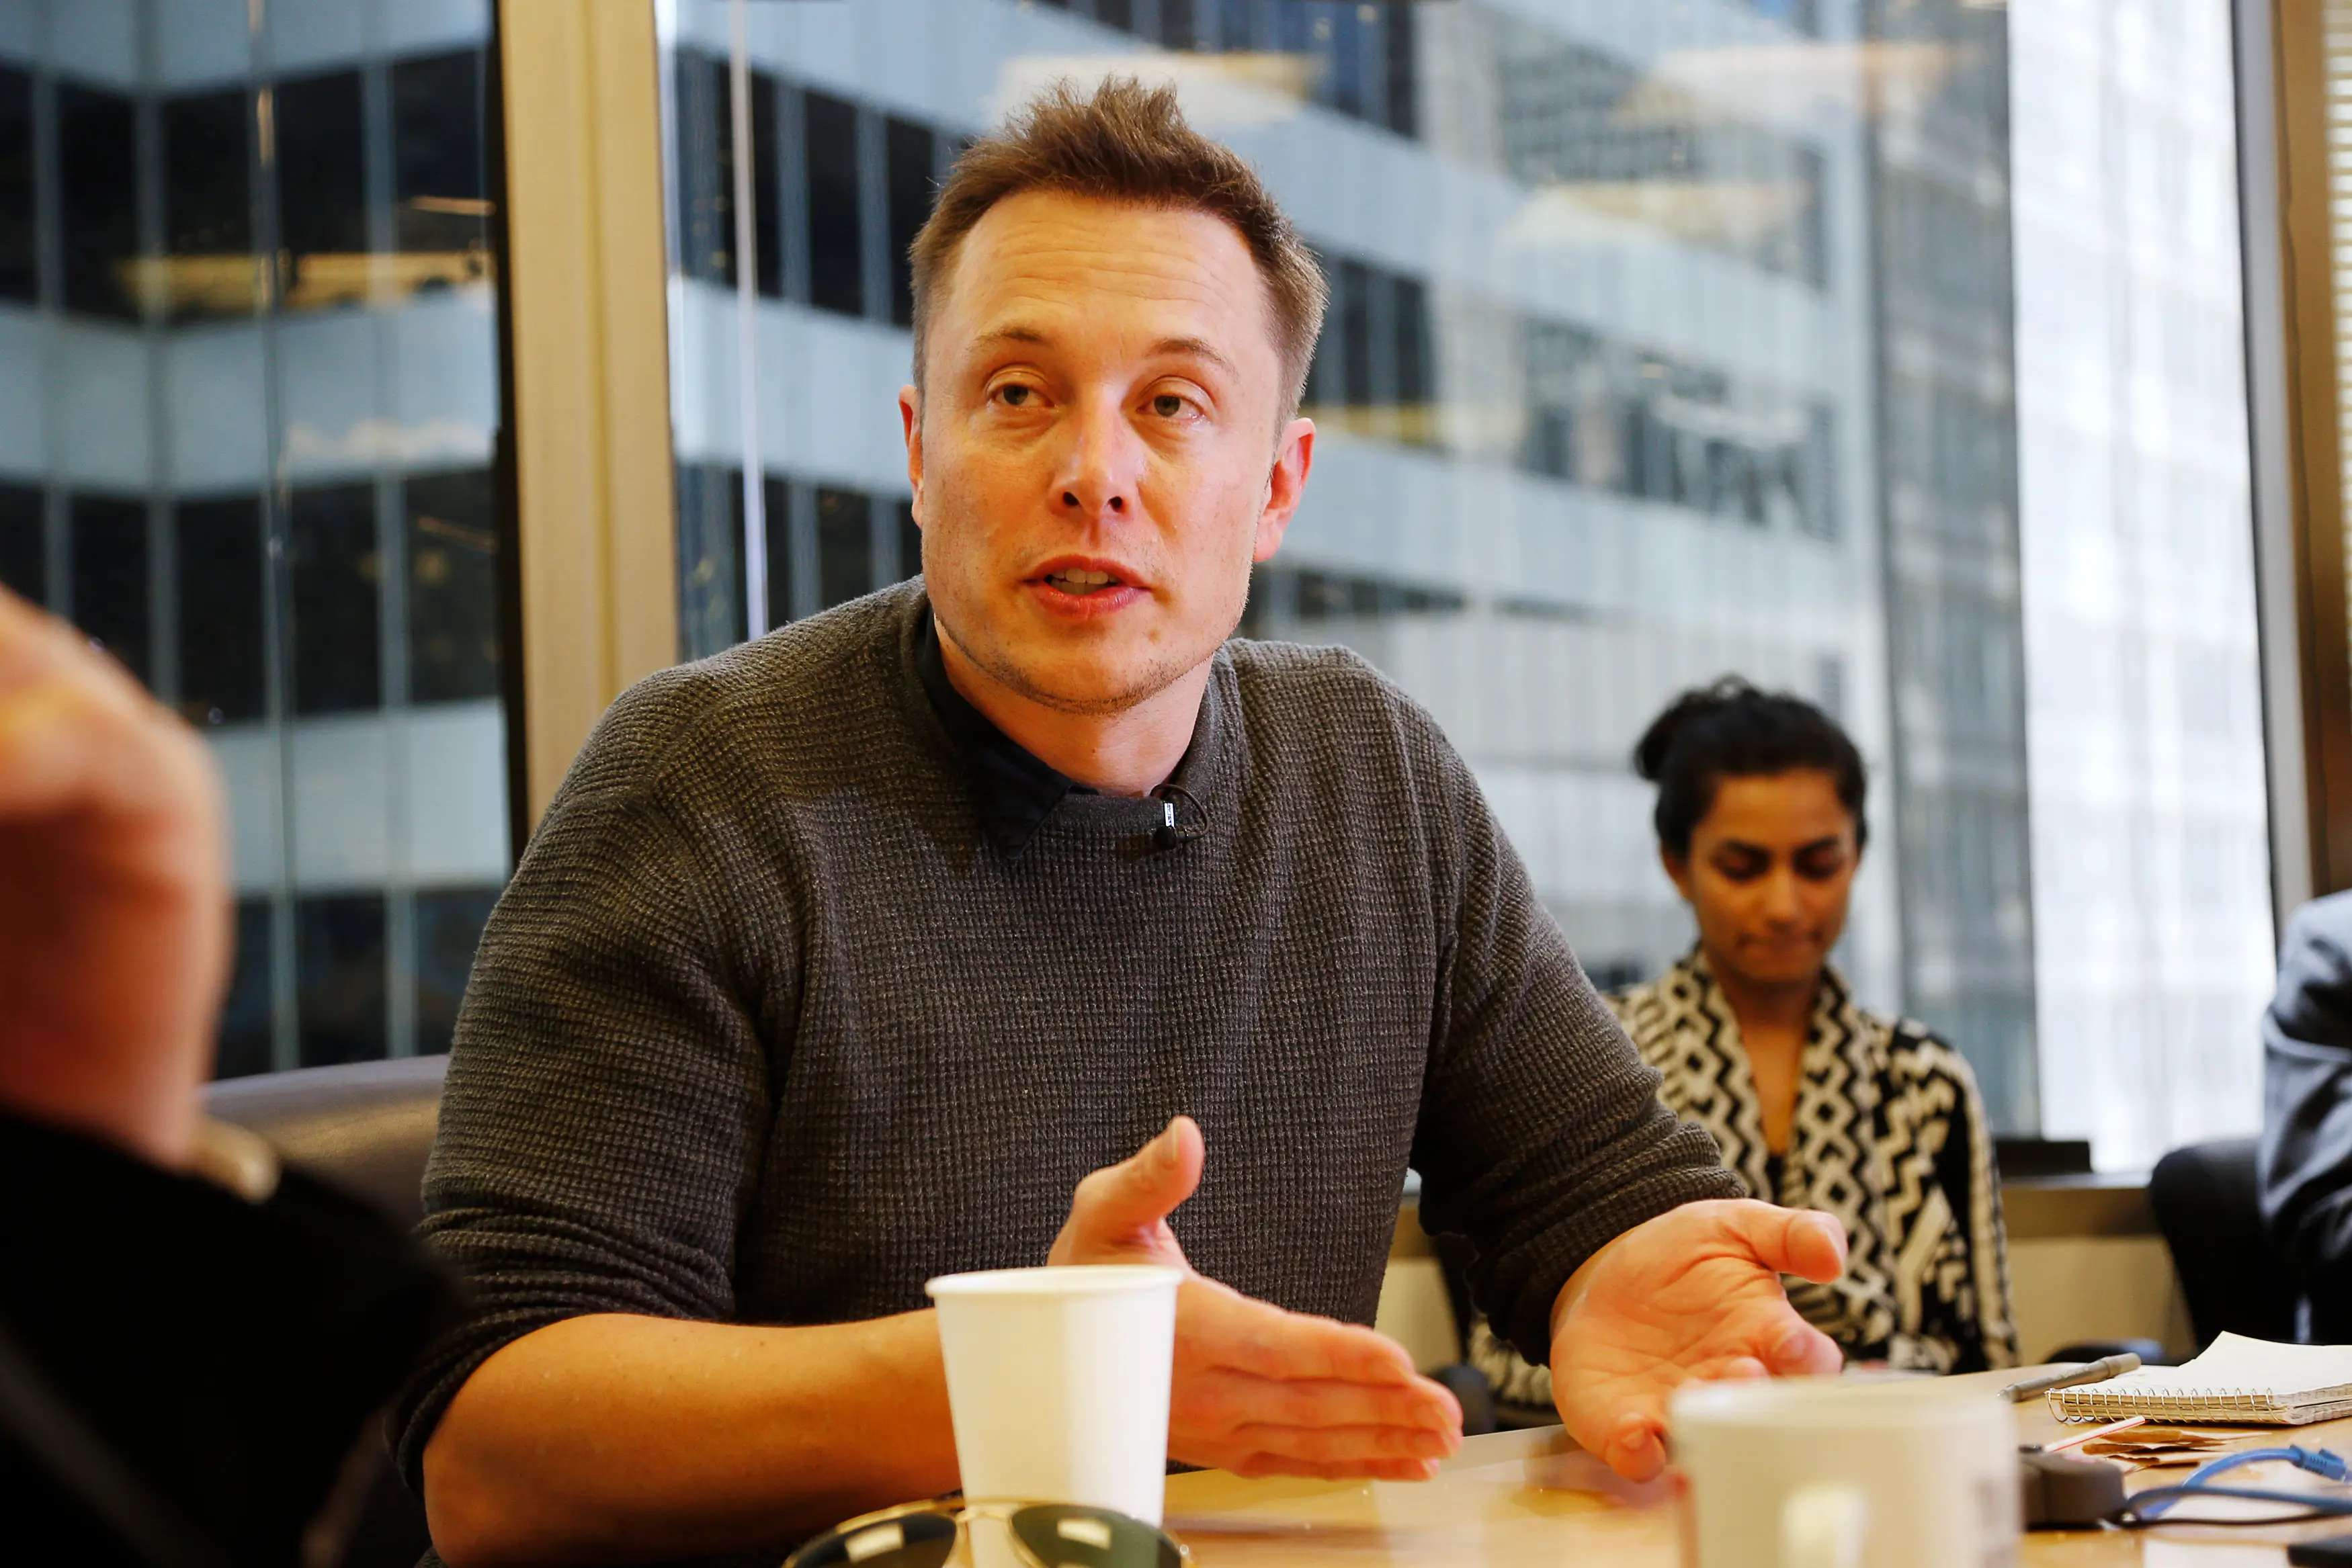 From there, Elon's successes started compounding on themselves. A year after selling his first company, his second startup bought what came to be known as PayPal. Only two years later, he sold PayPal (of which he had an 11.7% stake) to eBay for $1.5 billion.